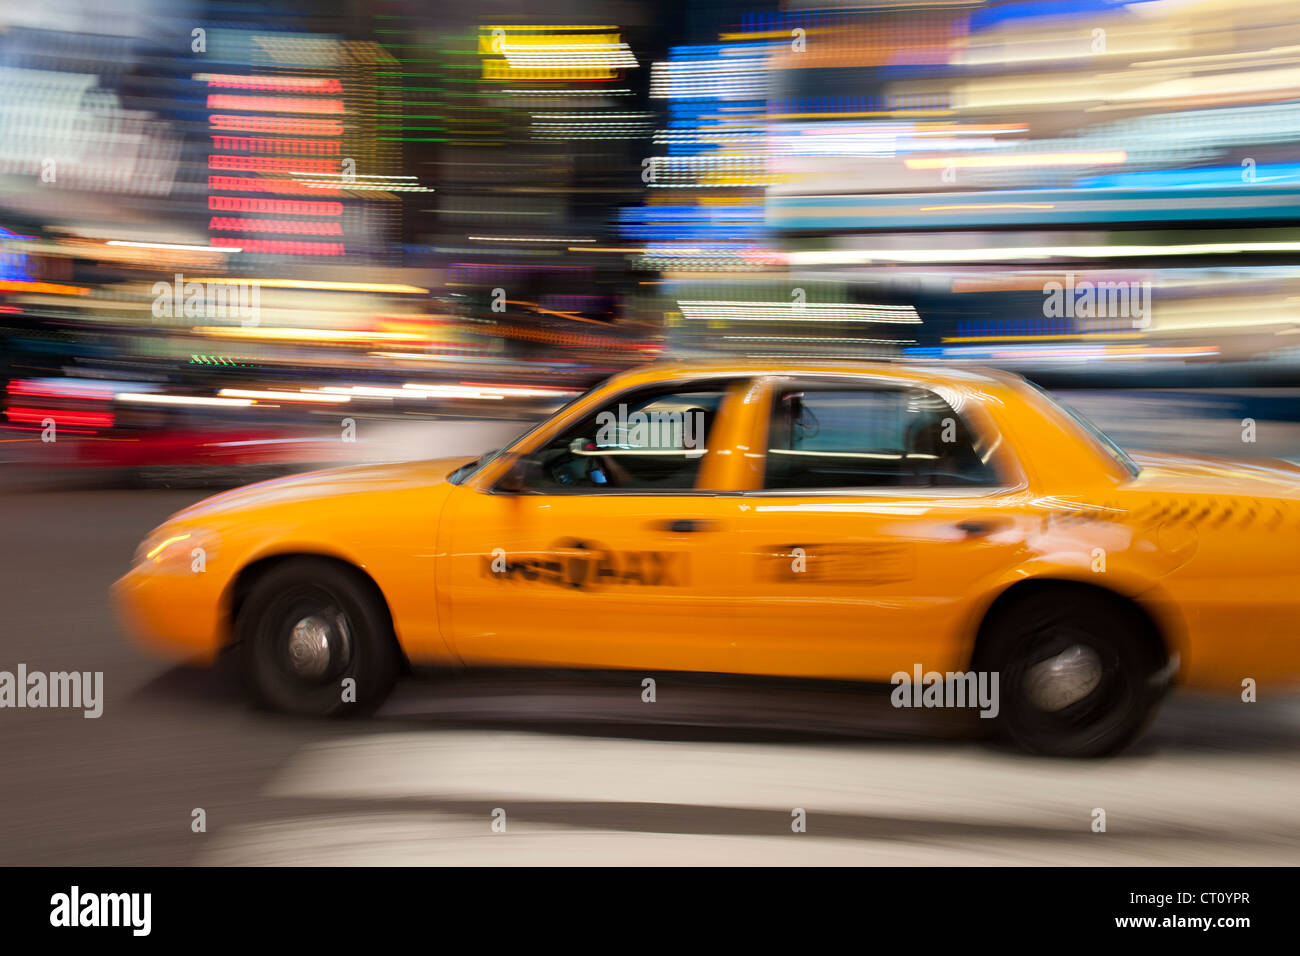 Motion-blurred image of a yellow New York cab driving in Manhattan at night. - Stock Image